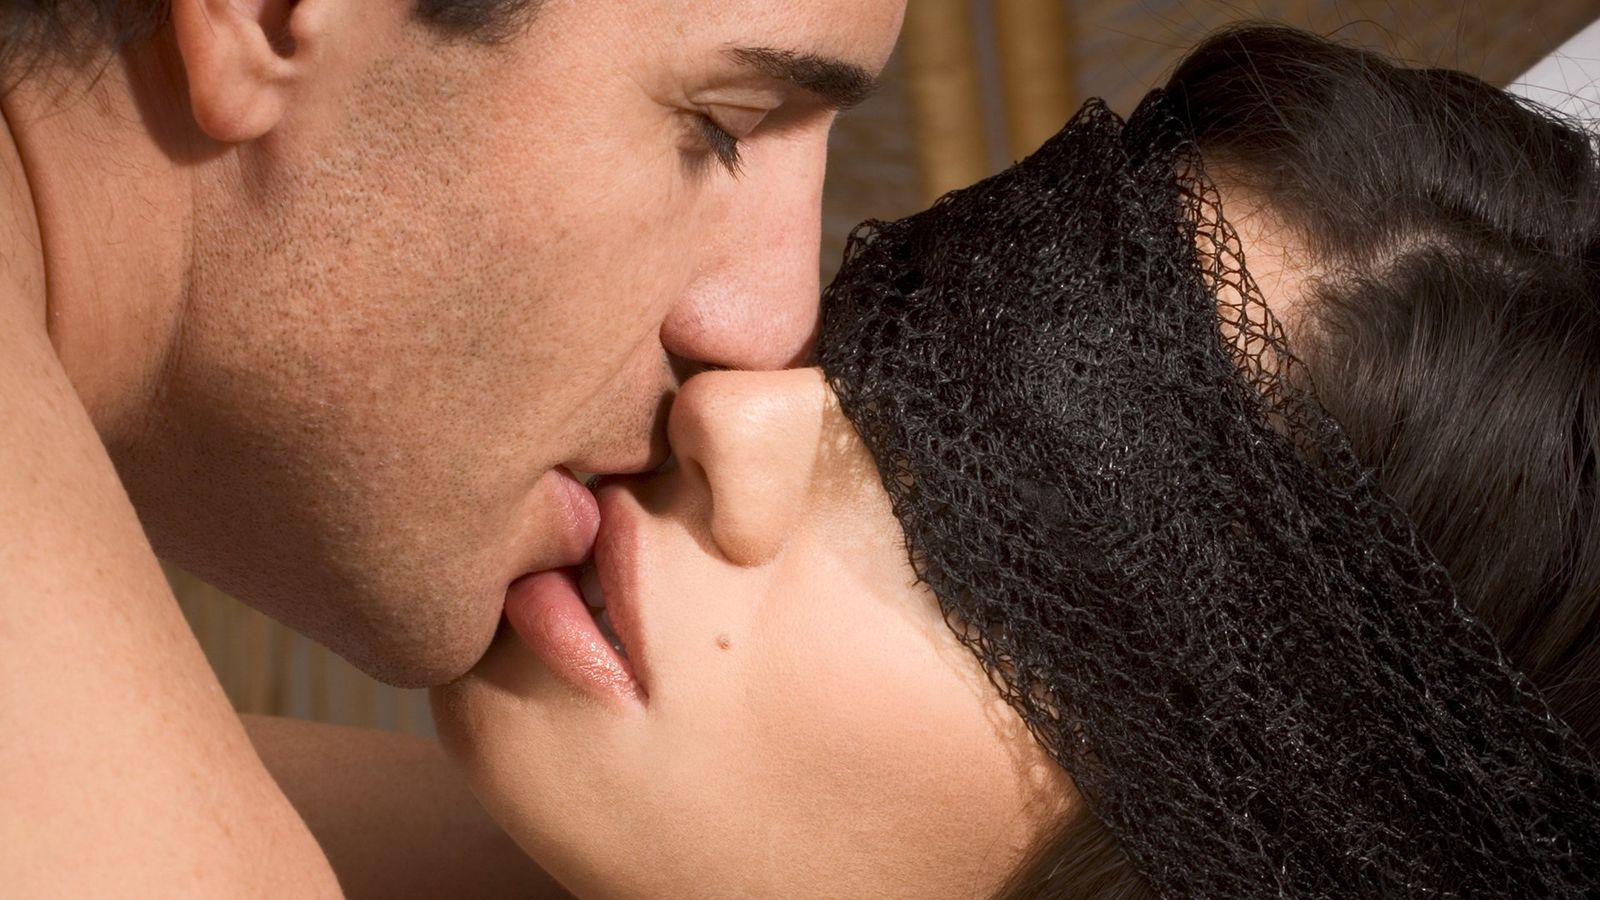 Why do older men prefer younger women and vice versa